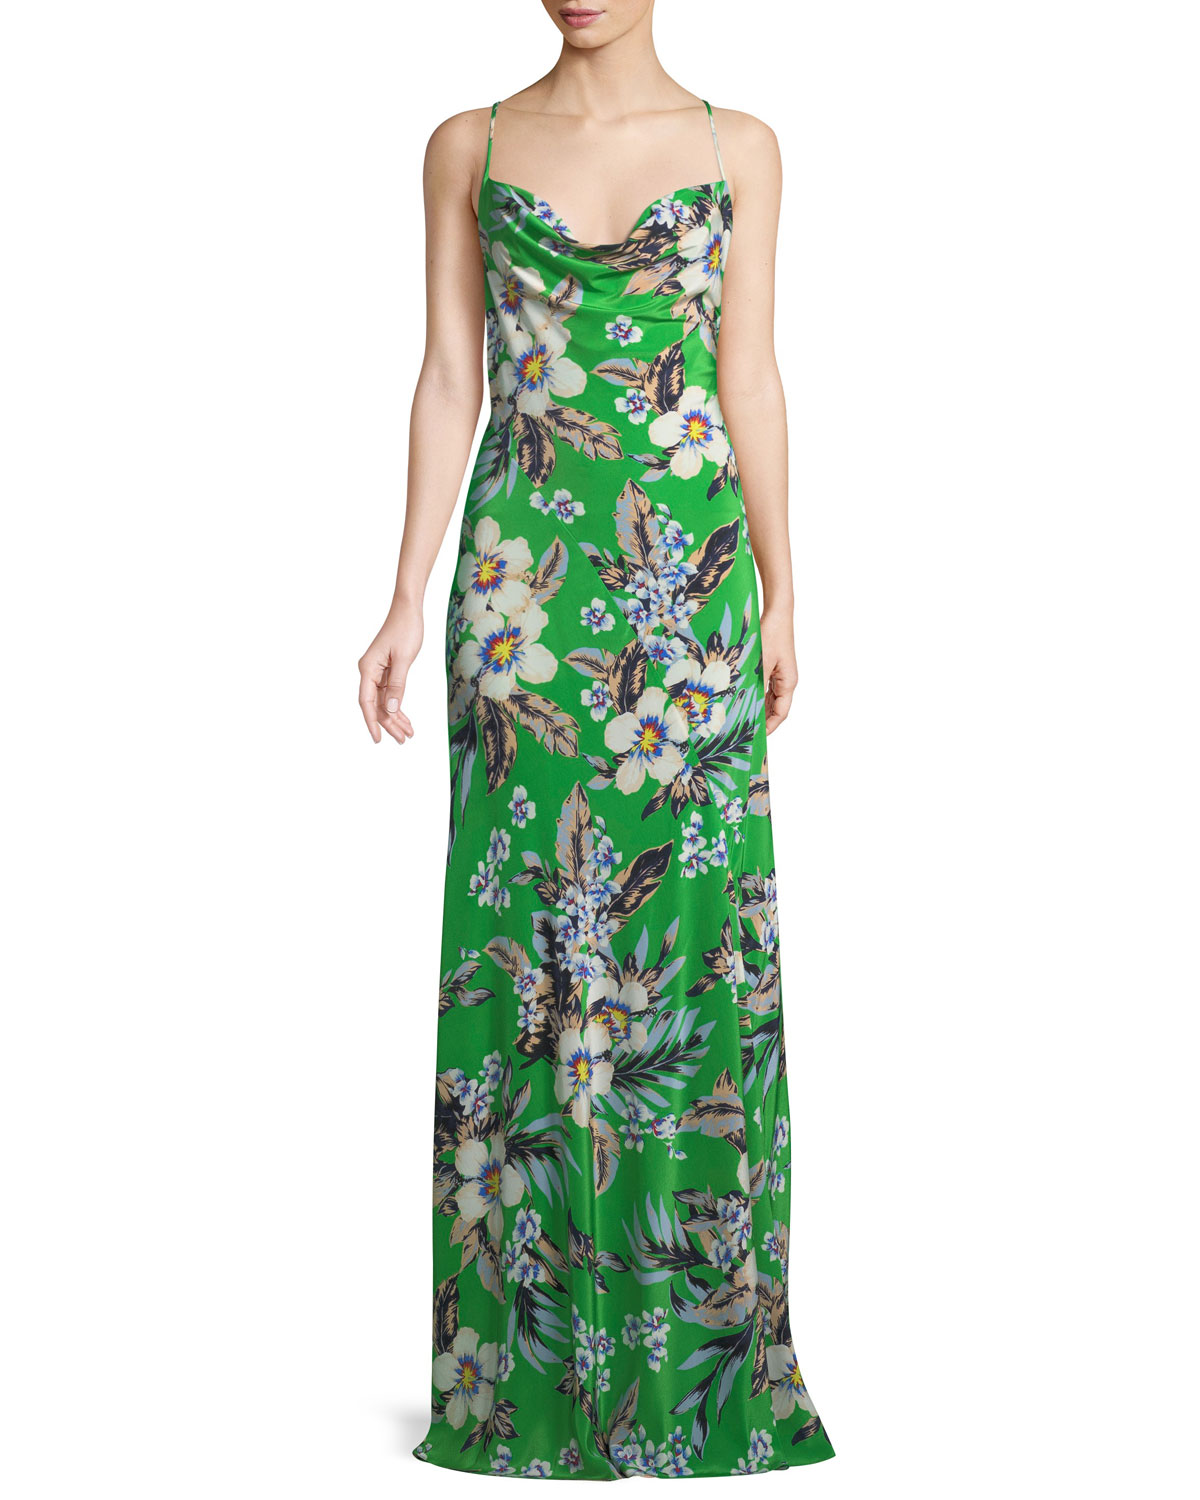 Cowl Neck Back Wedding Dresses: Diane Von Furstenberg Cowl-Neck Silk Floral Bias Gown